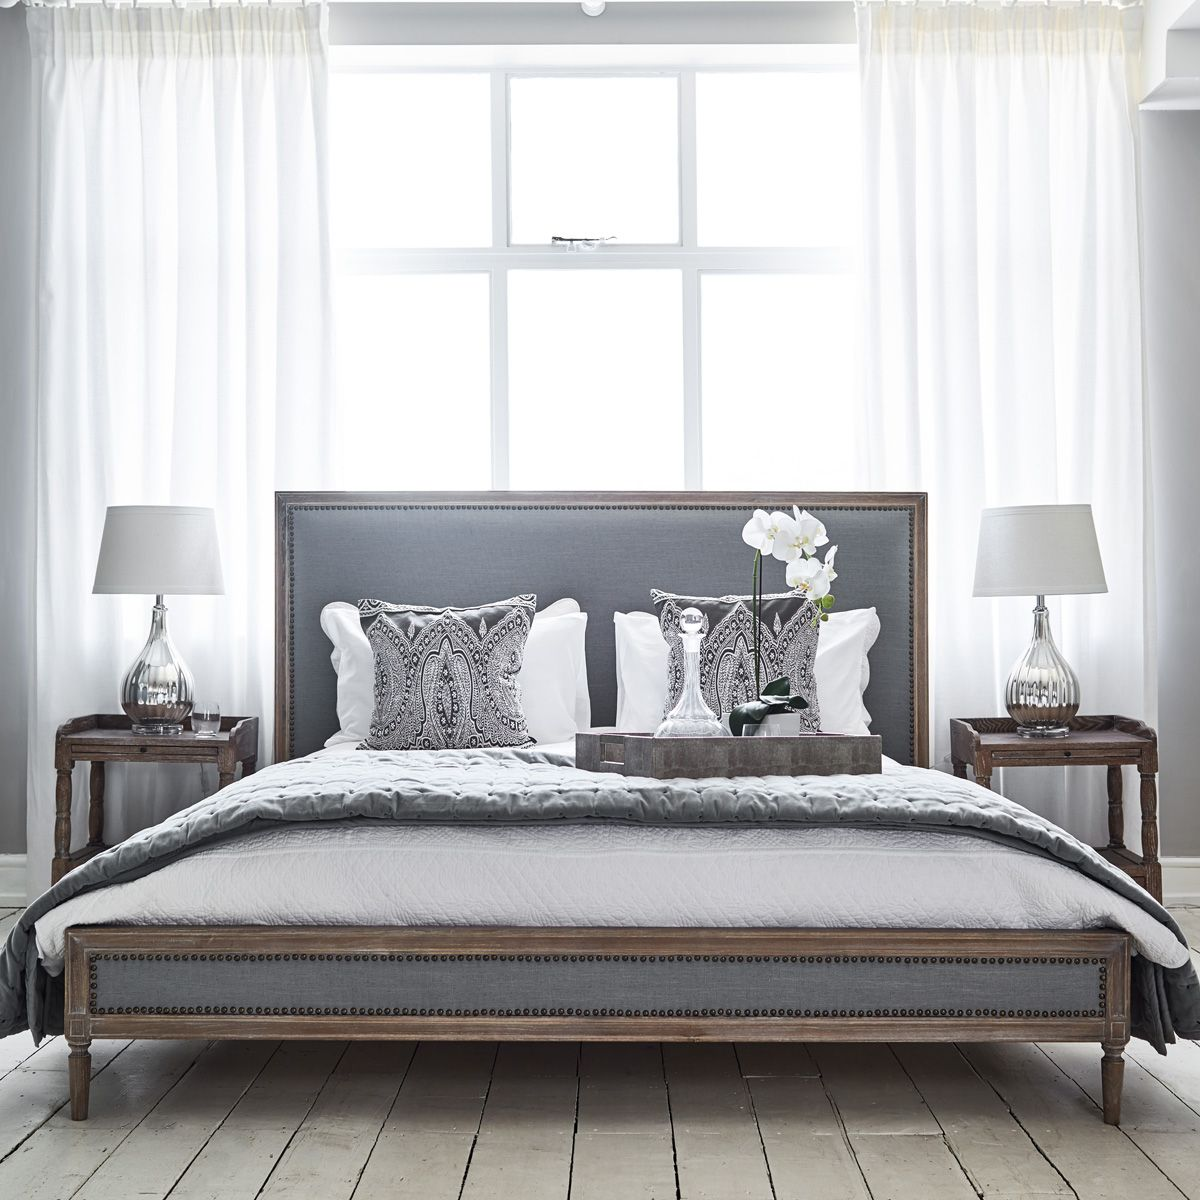 Boston Bed Super King Size Grey Linen King size